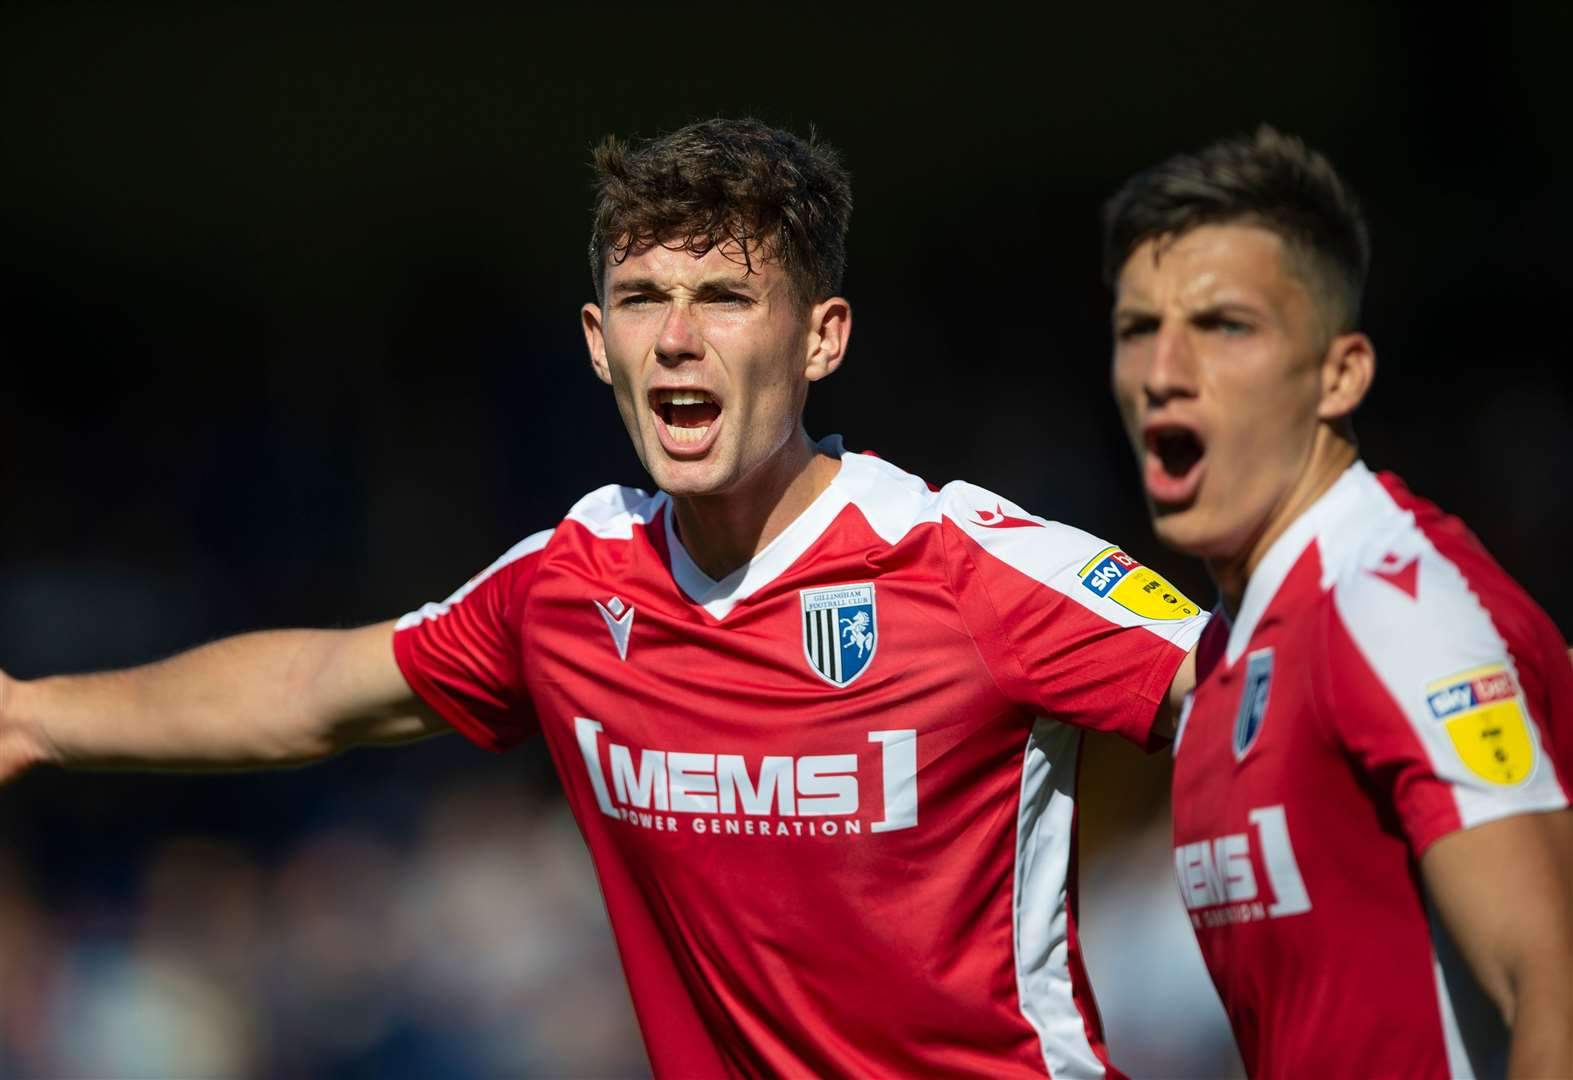 The Shouting Men: Saints loanee loving Gills experience